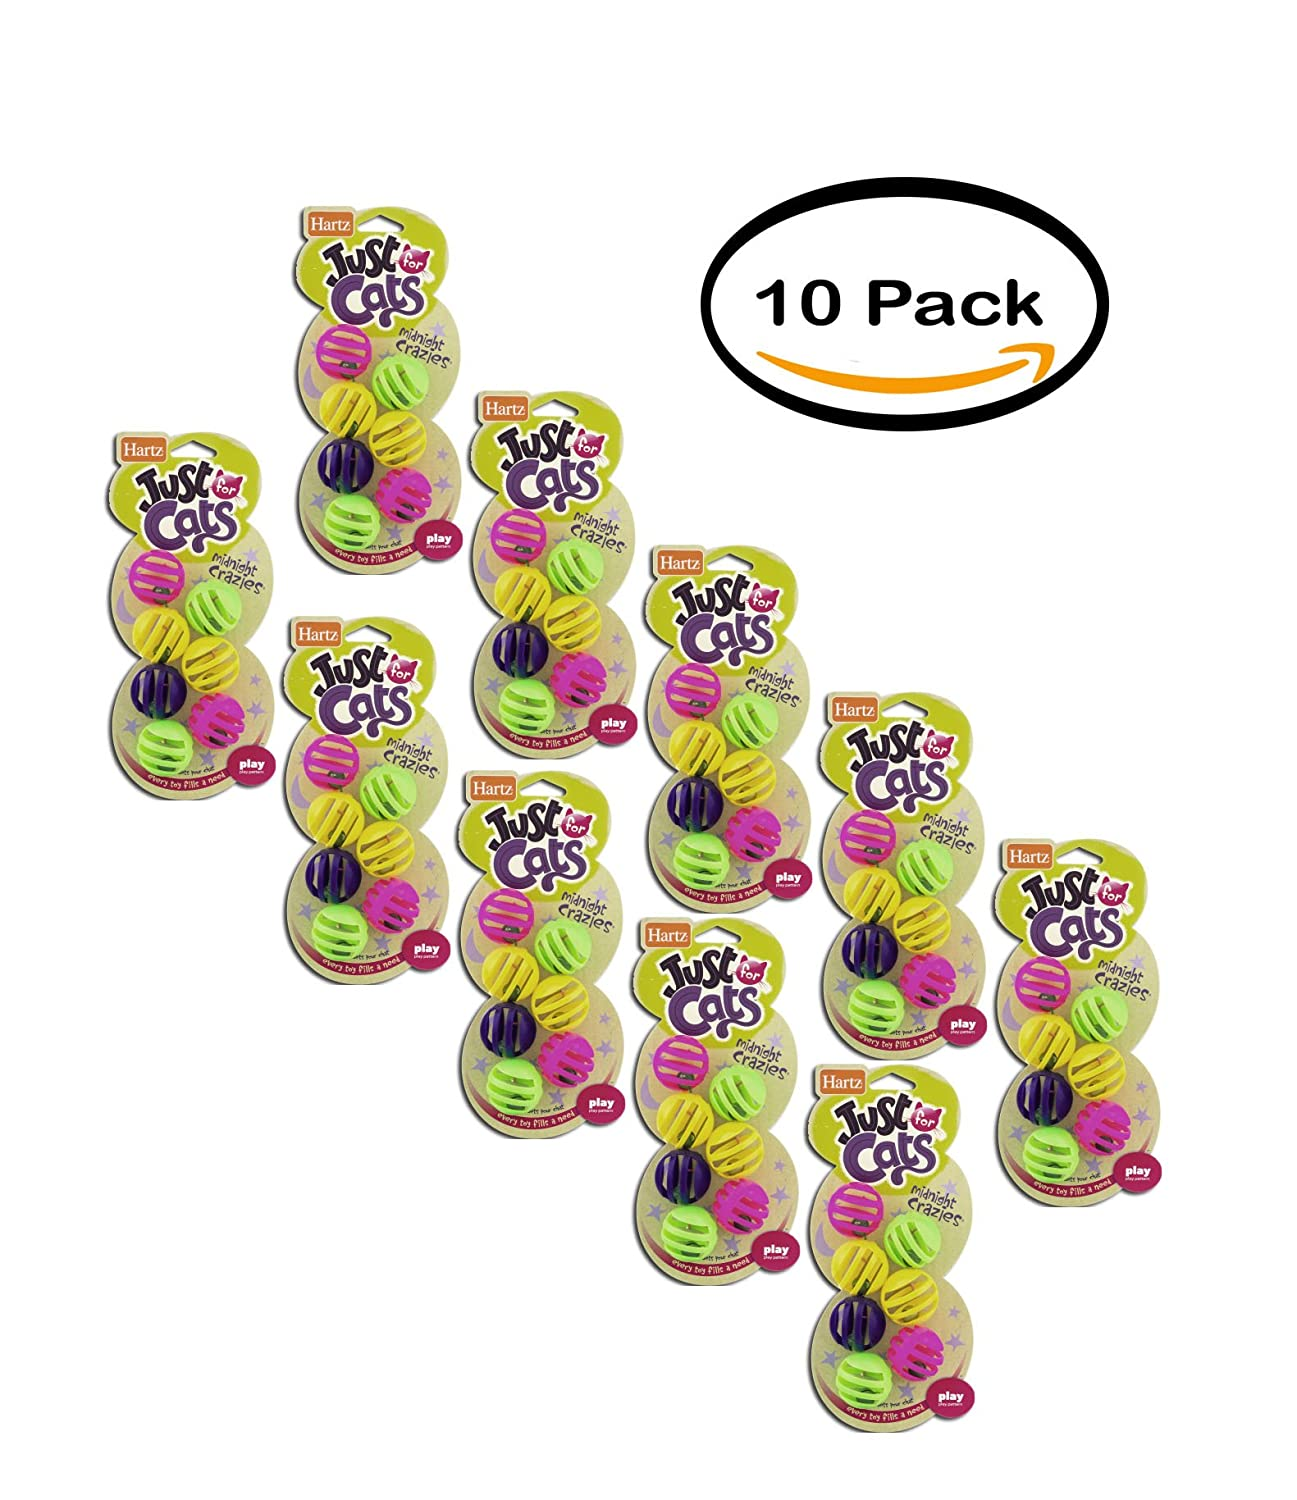 good PACK OF 10 - Hartz Just for Cats Midnight Crazies Cat Toys - 7 CT